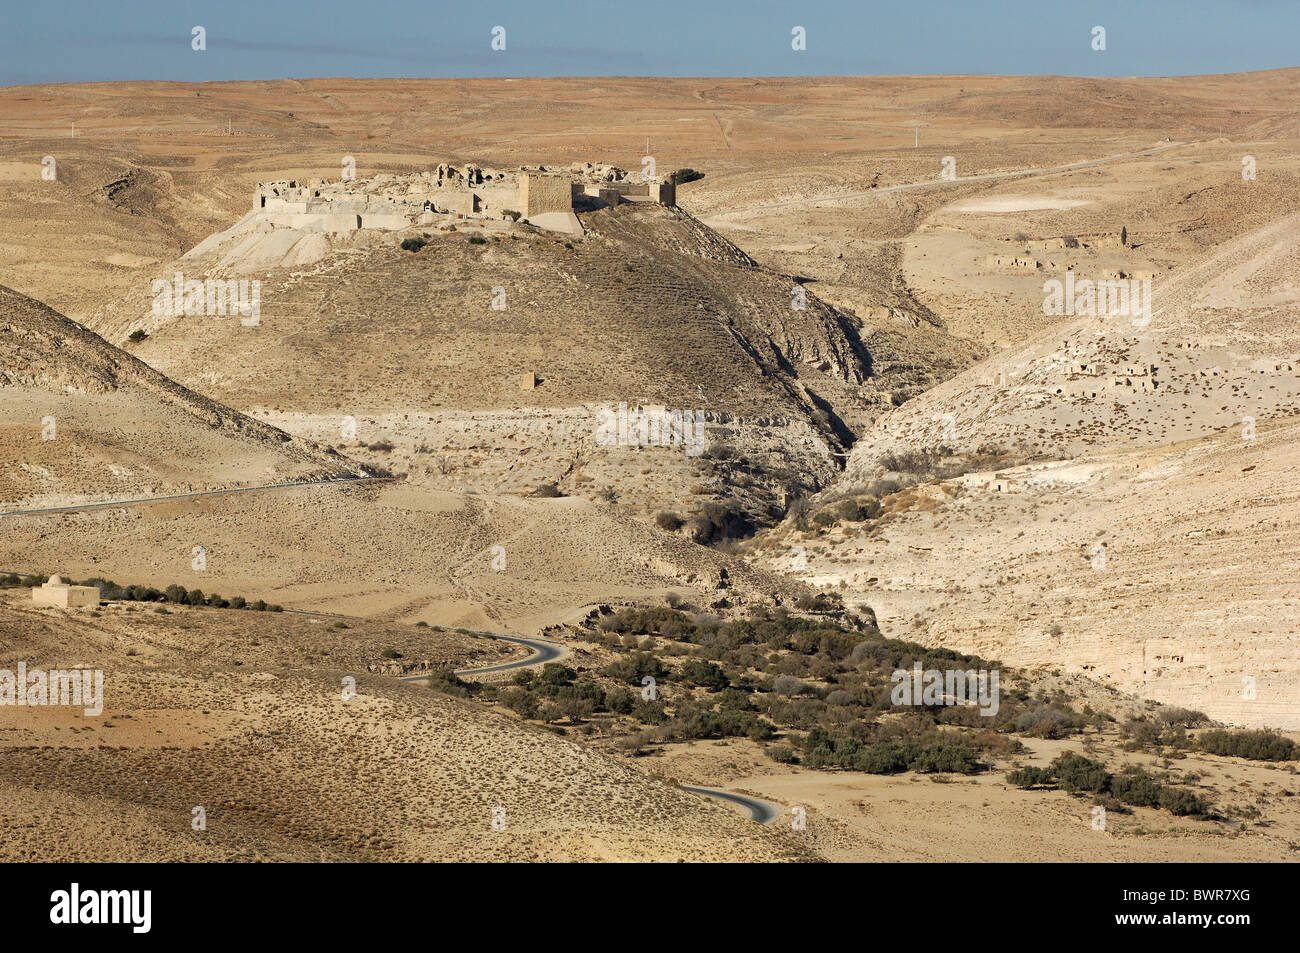 Jordan Montreal Crusader castle King Highway Middle East culture historic history ancient ruins mediaeval - Stock Image